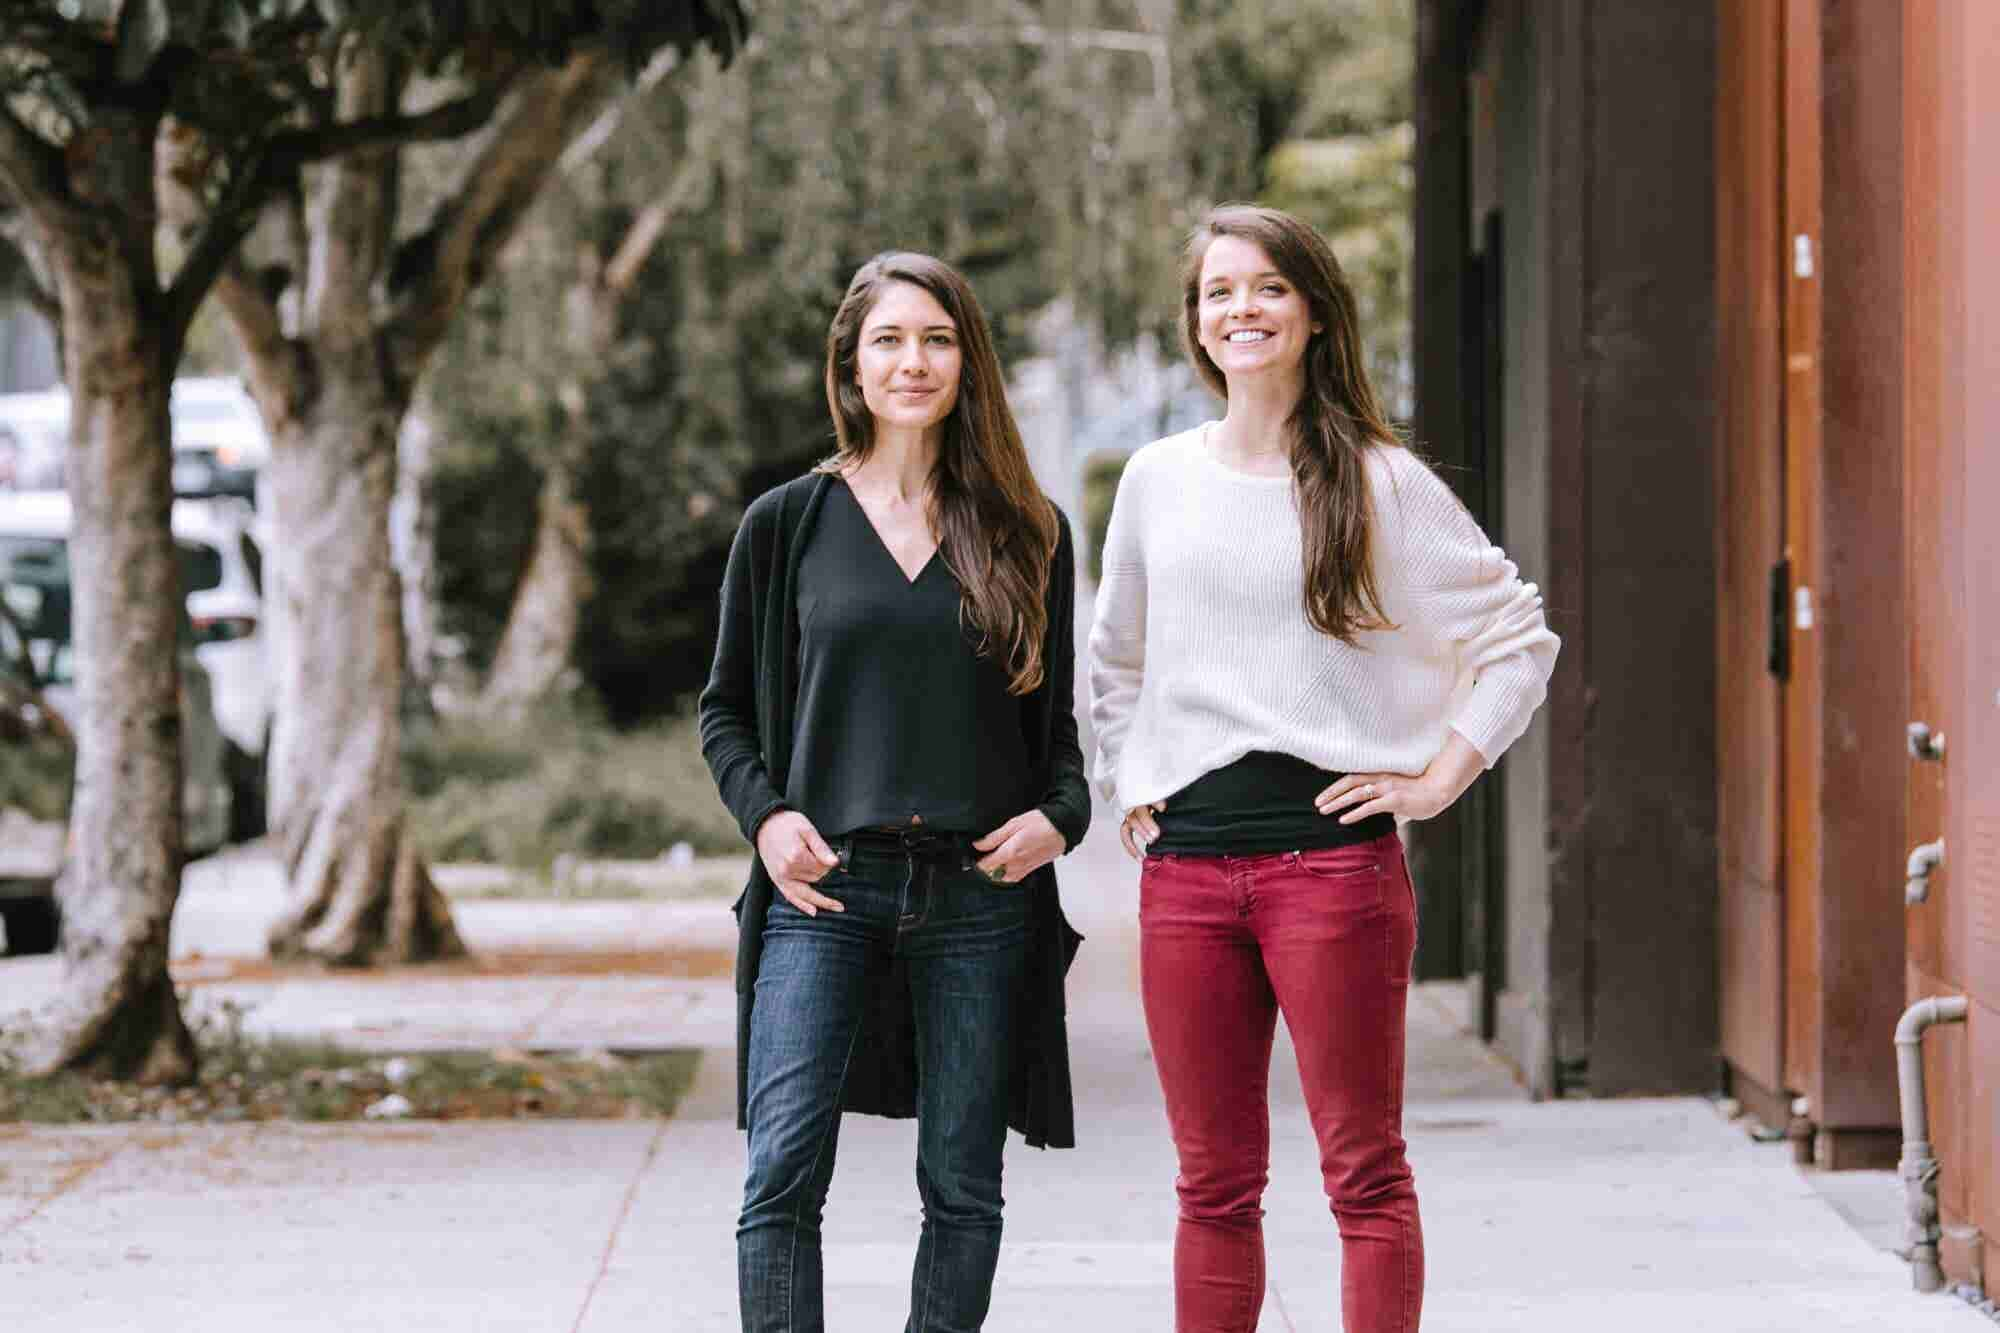 'We Built This Company List By List' Says the Co-Founder of This At-Home Fertility Testing Startup